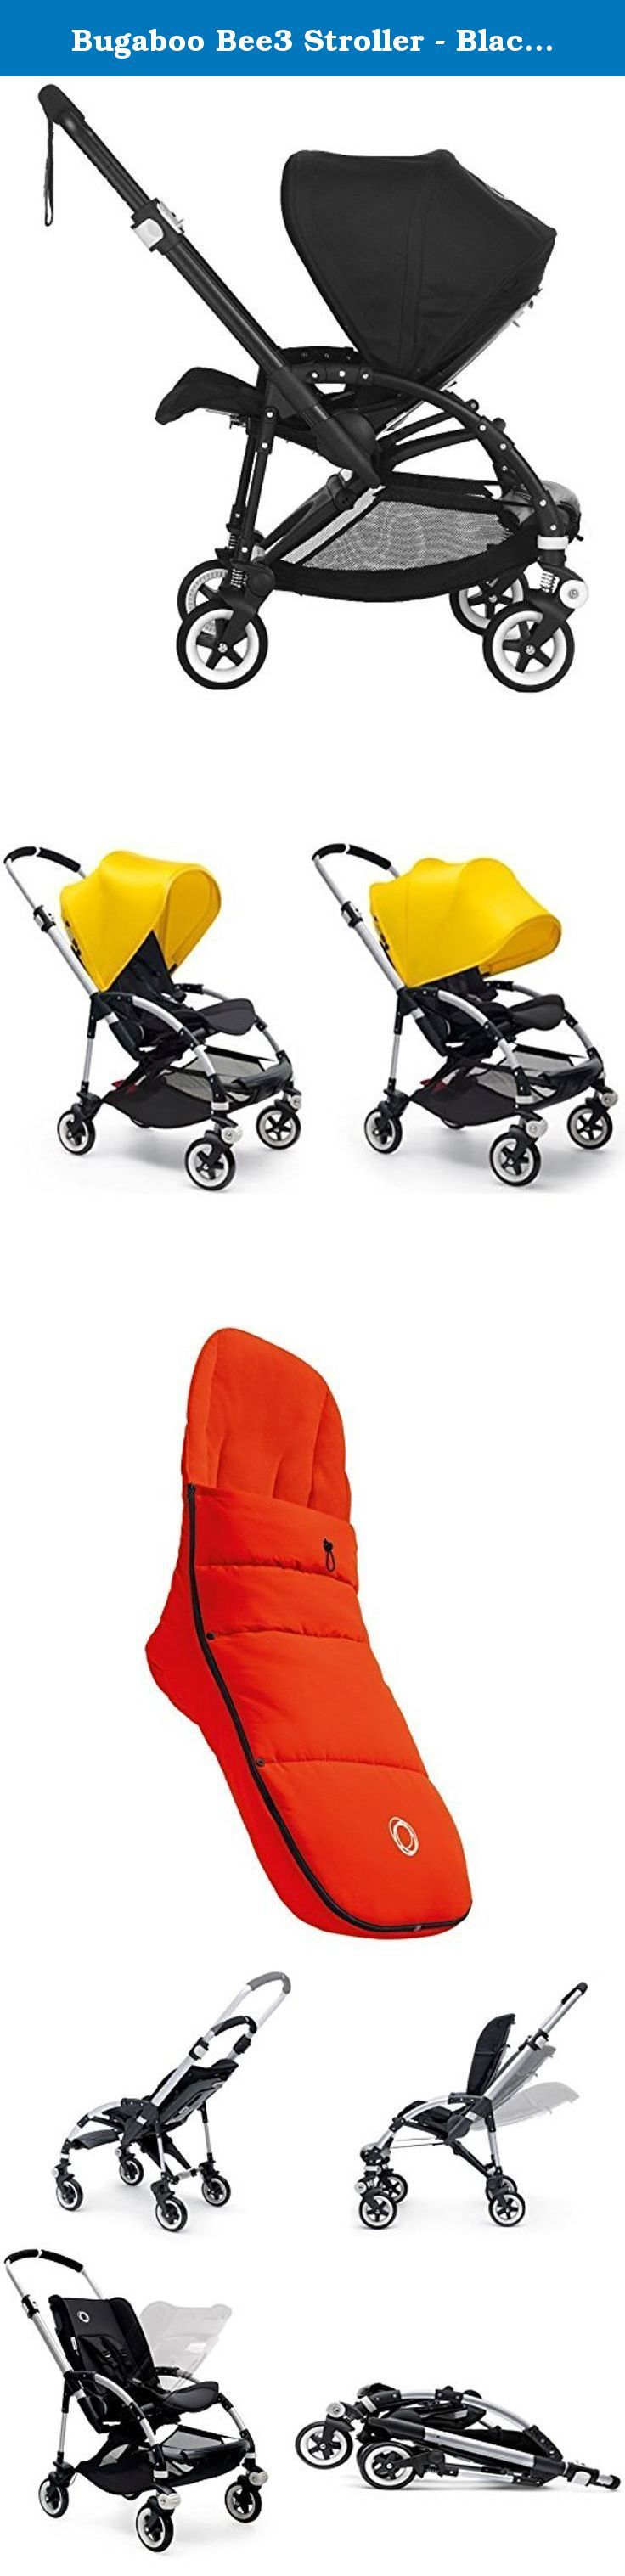 Bugaboo Bee3 Stroller - Black - Black - Black with Bugaboo Universal Footmuff (Orange). The Bugaboo Bee3 Complete All Black Base includes everything you need for the stroller, including the base, seat, seat fabric, and extendable hood. For parents who live life on the fly, Bugaboo makes life even easier with the new Bugaboo Bee3. The 3rd generation urban stroller for newborns and toddlers offers your child even more comfort and now features an easy-to-carry bassinet, brand new fabrics and...